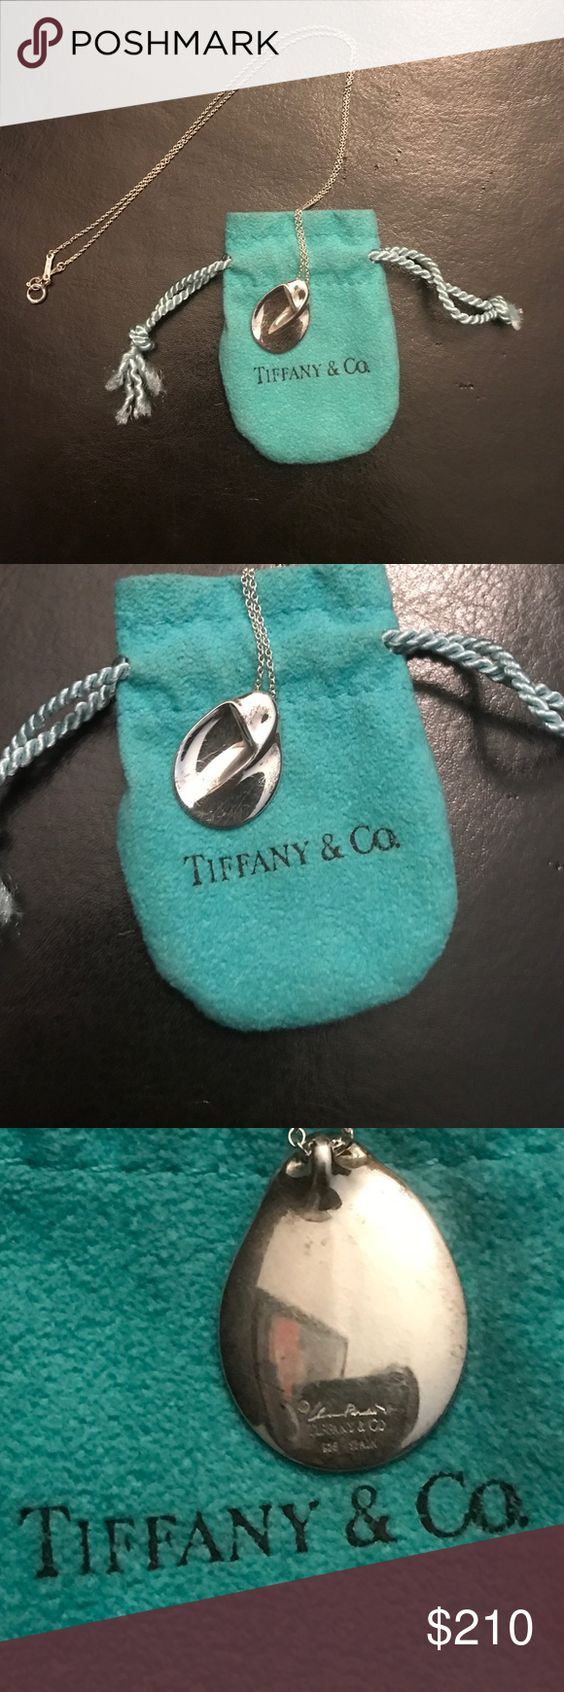 """Tiffany & Co. Necklace Tiffany & Co. Elsa Peretti """"Madonna"""" Pendant Necklace. Pendant is sterling silver, and approx. 20 mm wide. Pendant has """"Elsa Peretti, Tiffany & Co. and 925 Spain"""" engraved on the back. On a 16"""" chain that also has """"Peretti"""" """"Spain"""" """"925"""" and """"Tiffany & Co."""" Necklace has some minor tarnishing and scratches as pictured but is in overall good condition. Comes with Tiffany & Co. pouch. Tiffany & Co. Jewelry Necklaces"""